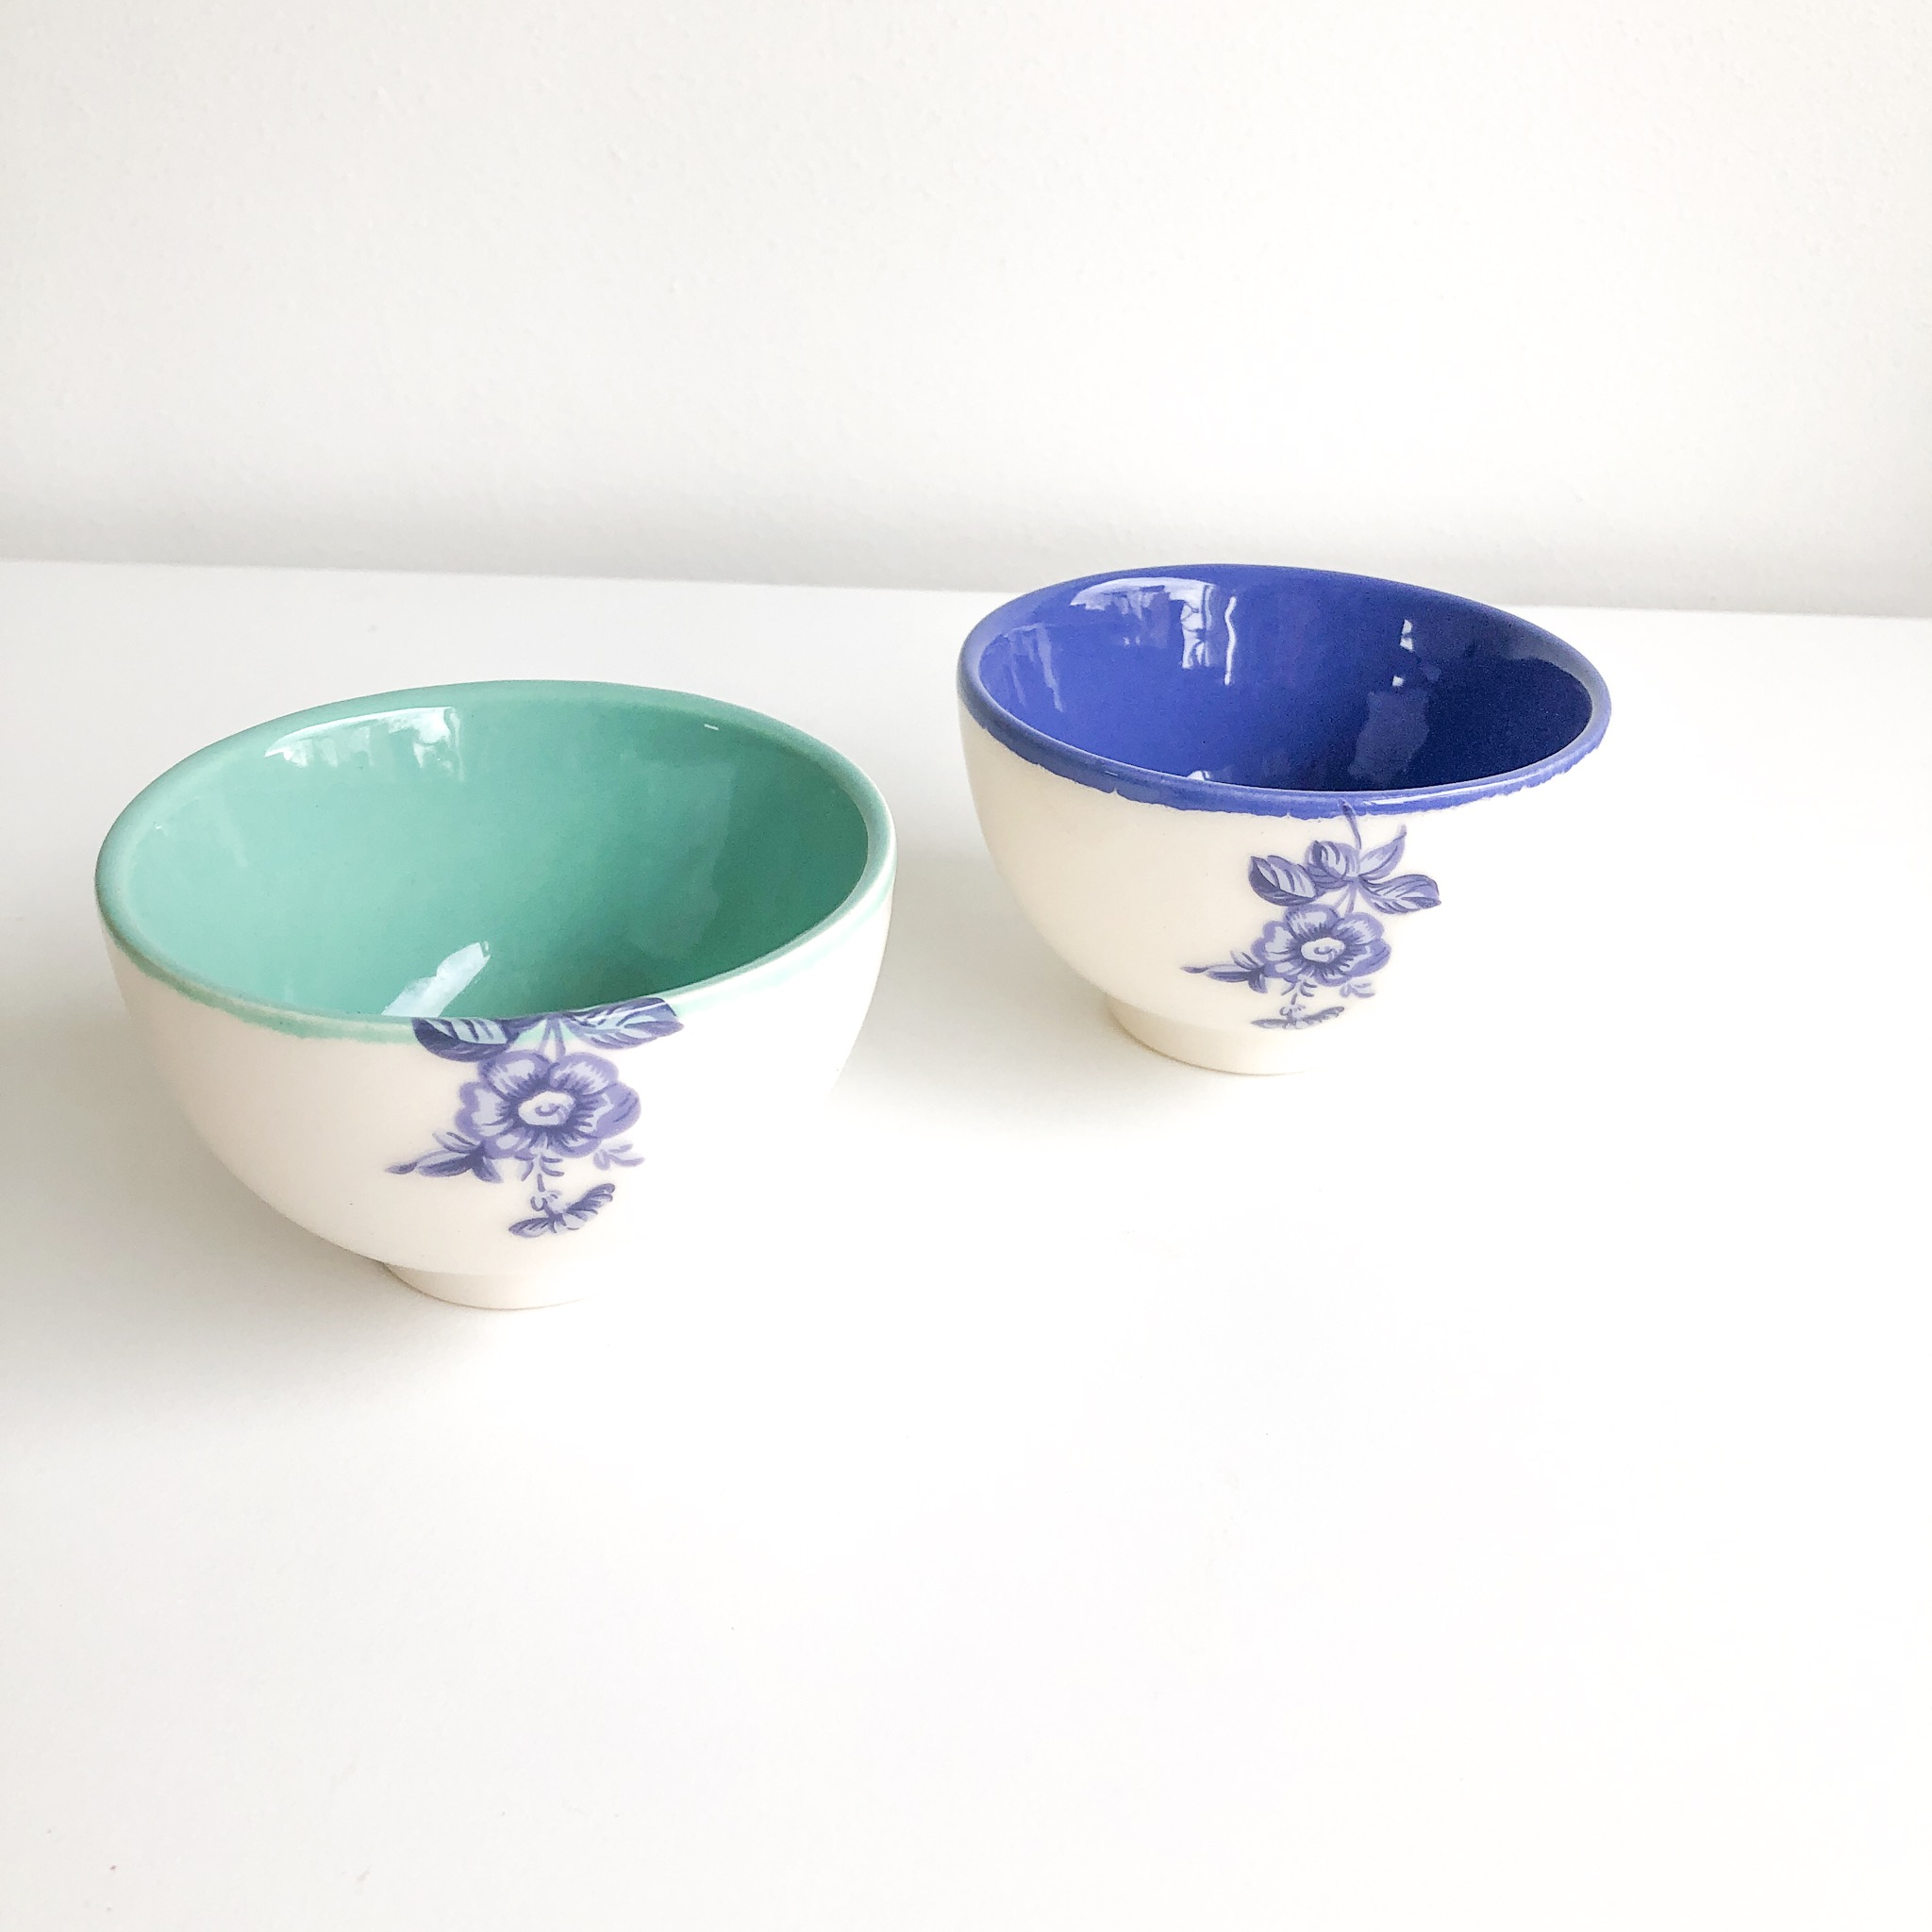 Miranaam handmade ceramic bowl with blue flower ( available in 2 colours)